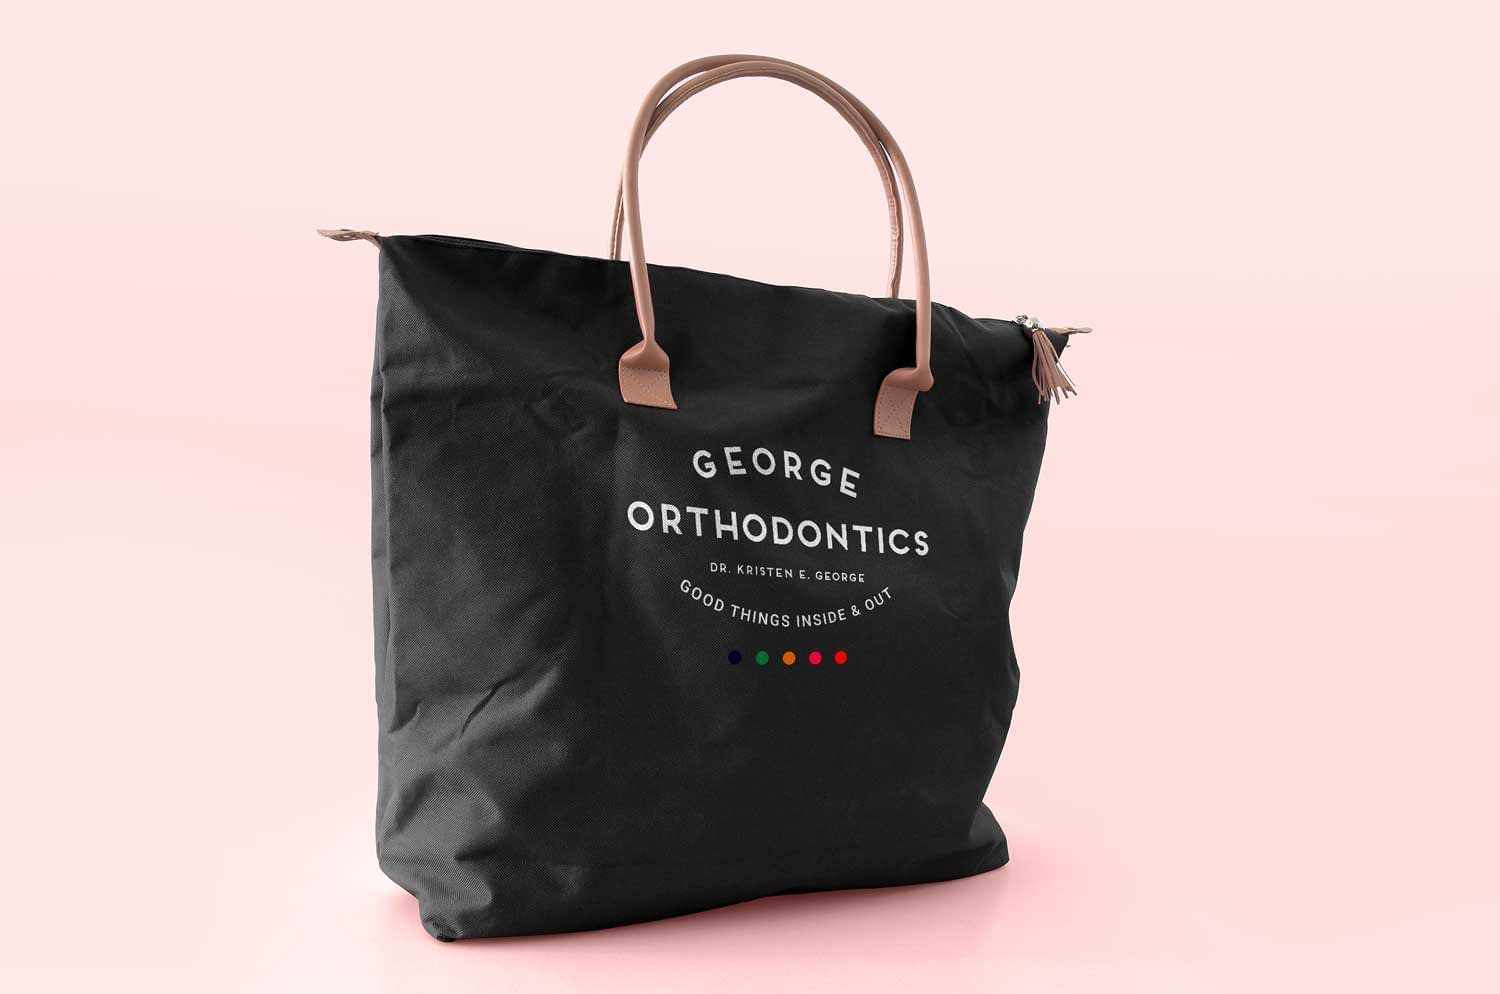 Tote Bag for George Orthodontics